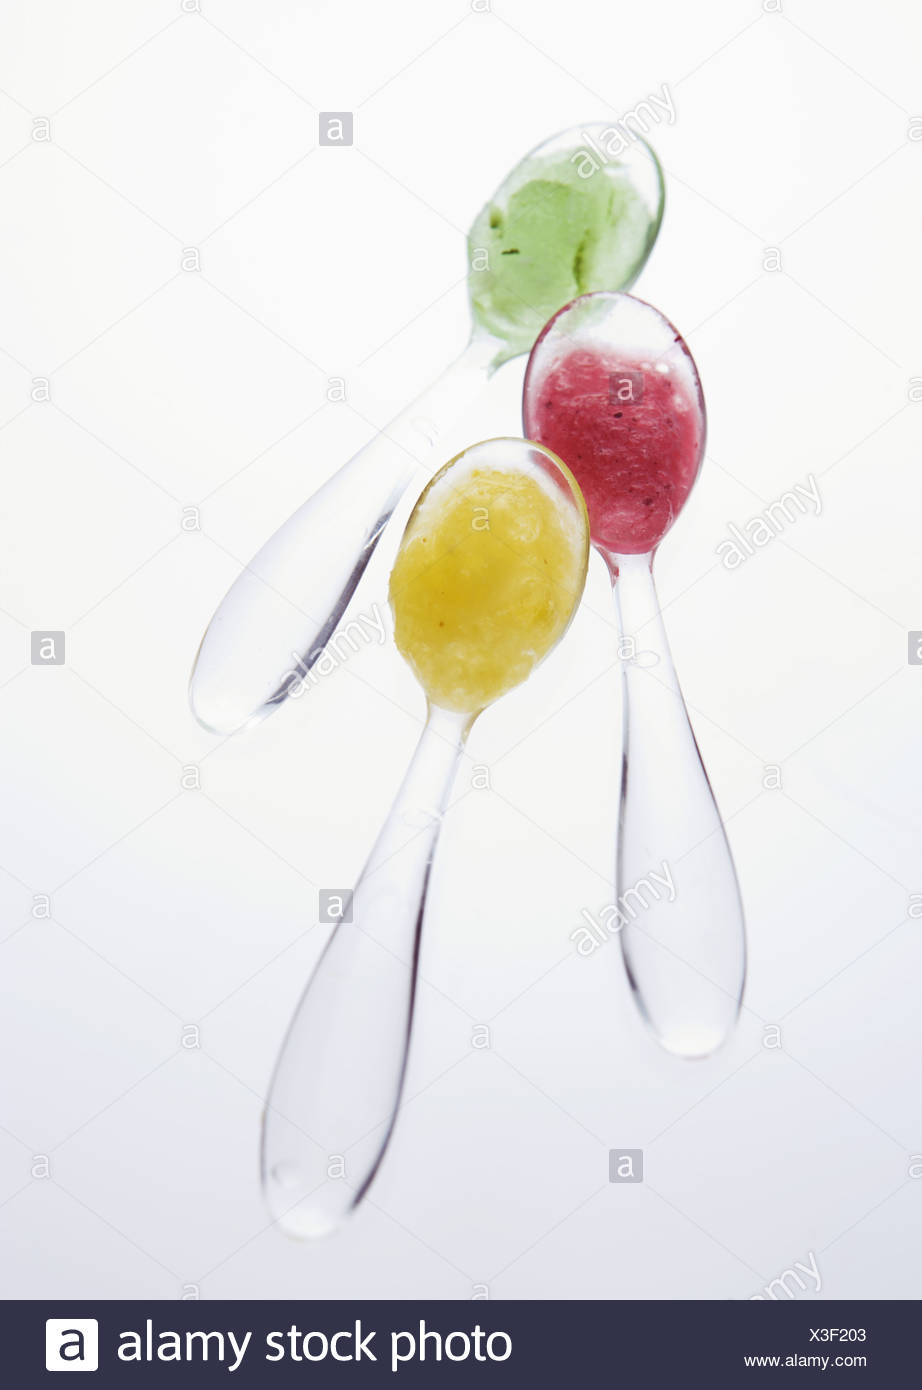 Spoonfuls of sherbets - Stock Image